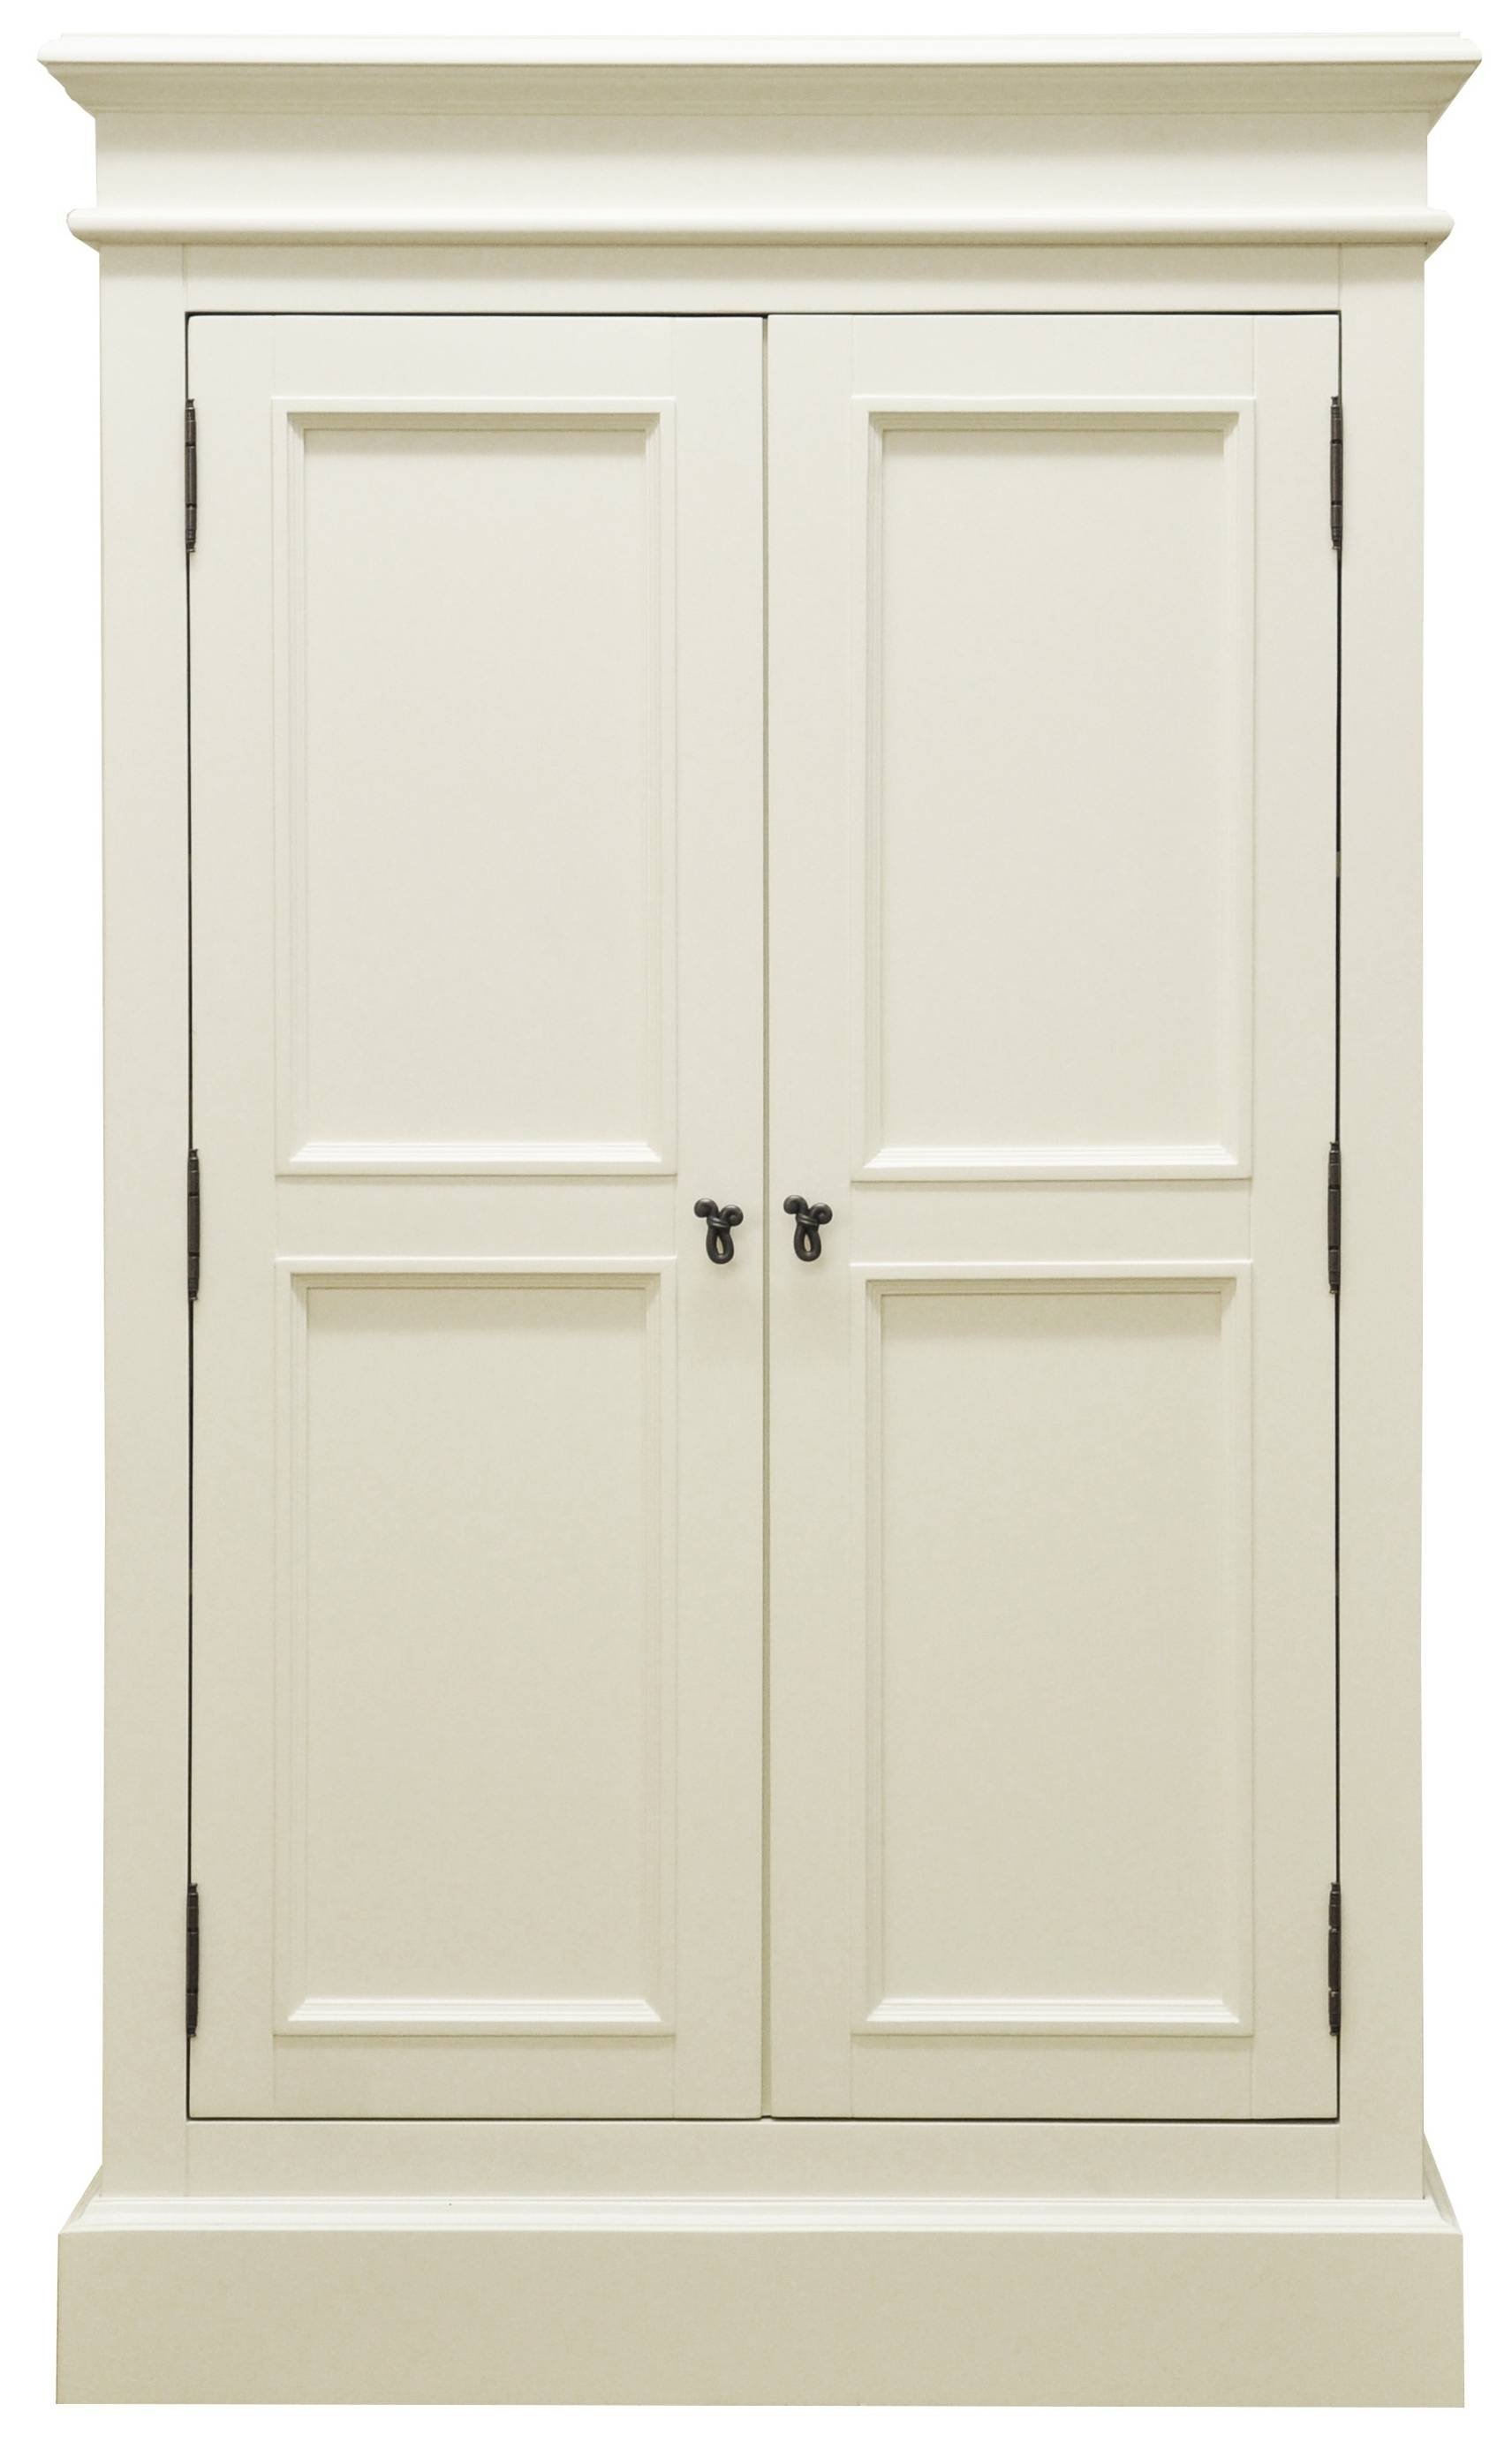 22 Closet Furniture, Wardrobe Closet: Wardrobe Closet Discount for Discount Wardrobes (Image 1 of 30)